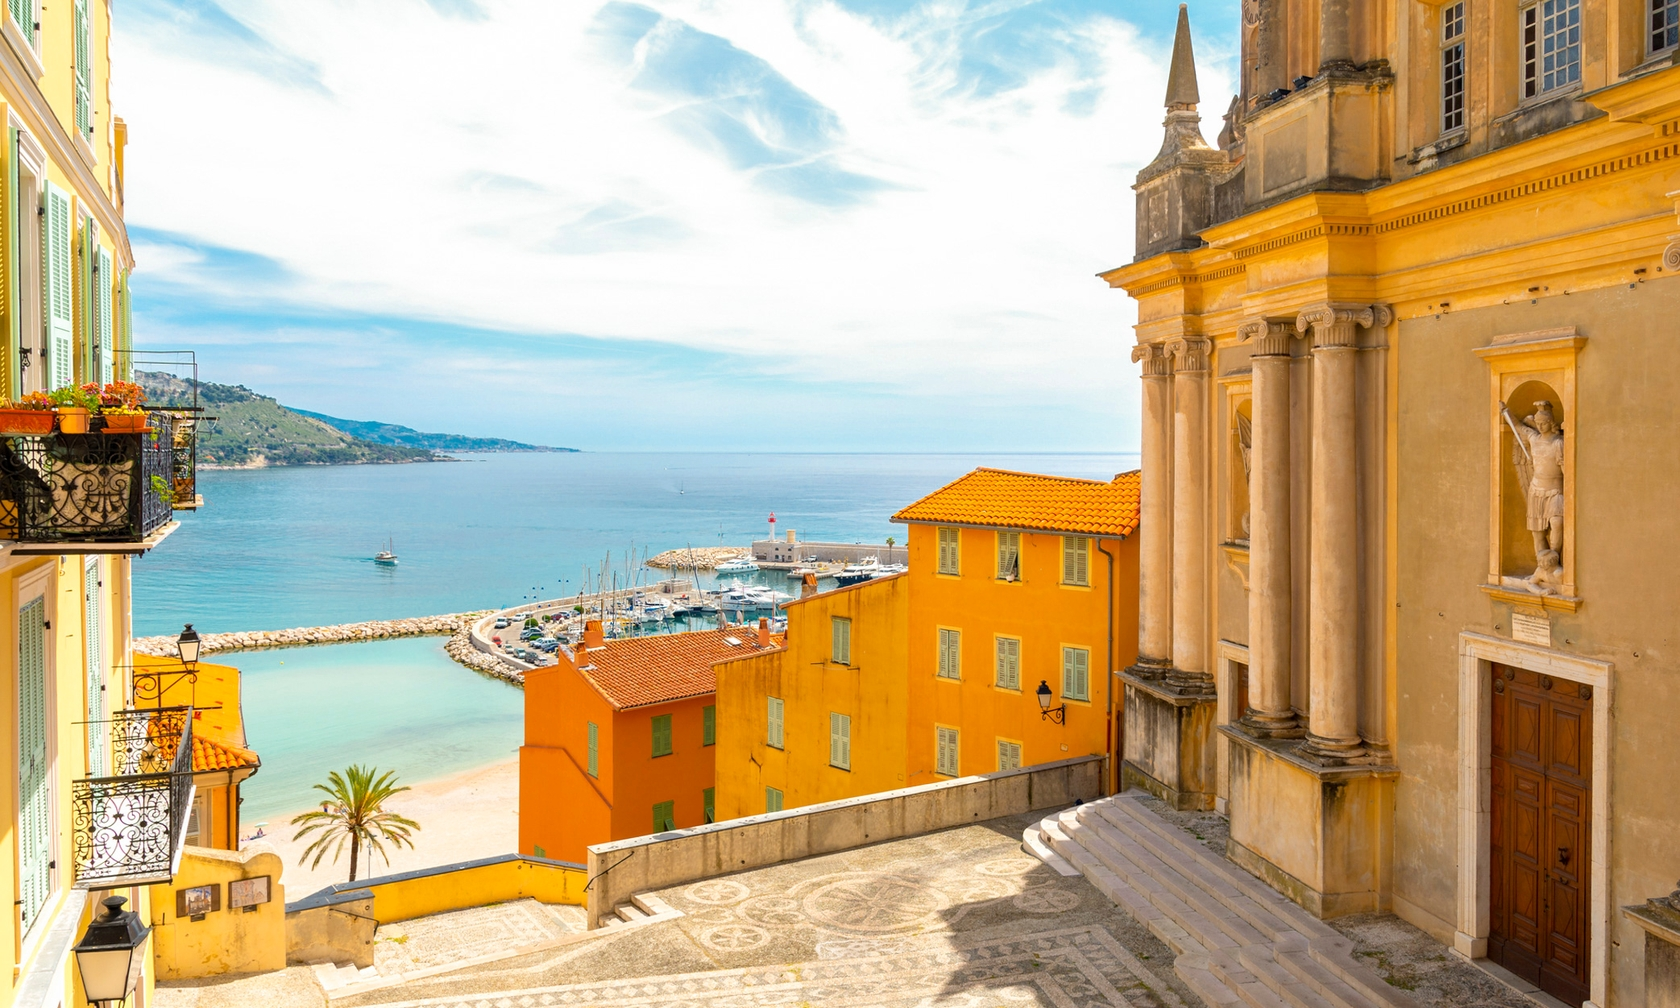 Holiday rentals in Cannes